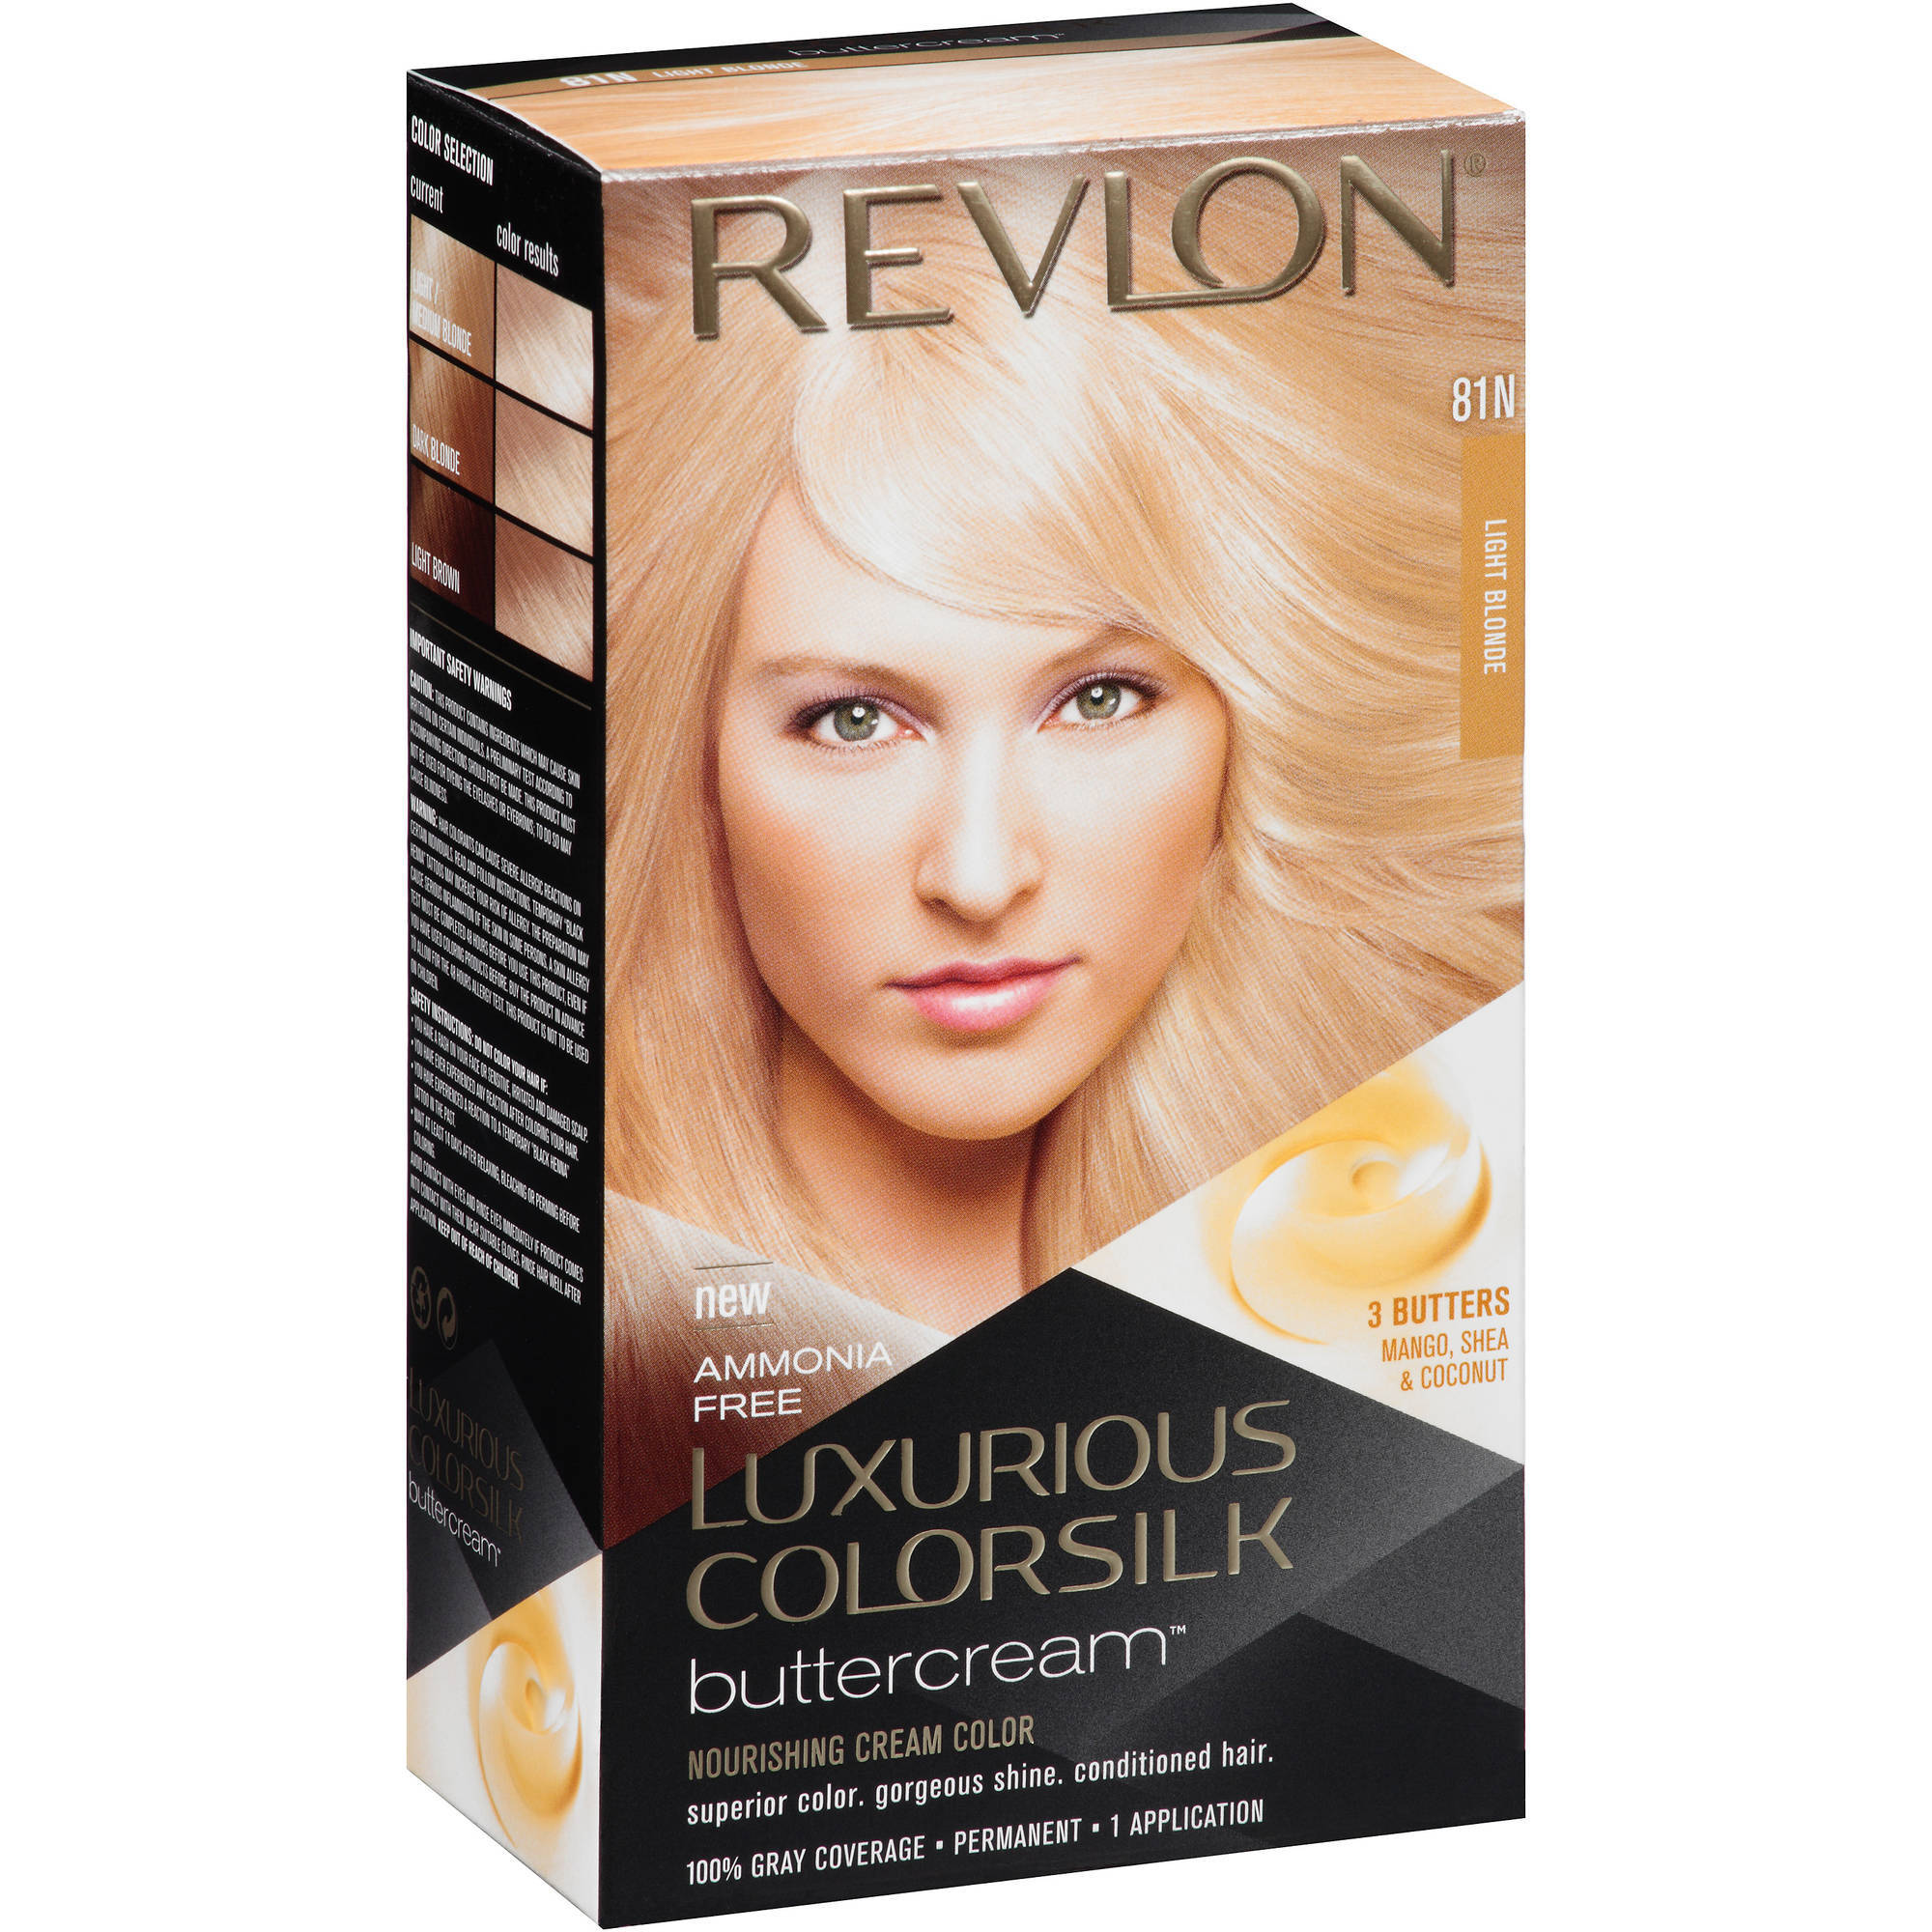 Revlon Luxurious Colorsilk Buttercream Hair Color, Choose Your Color